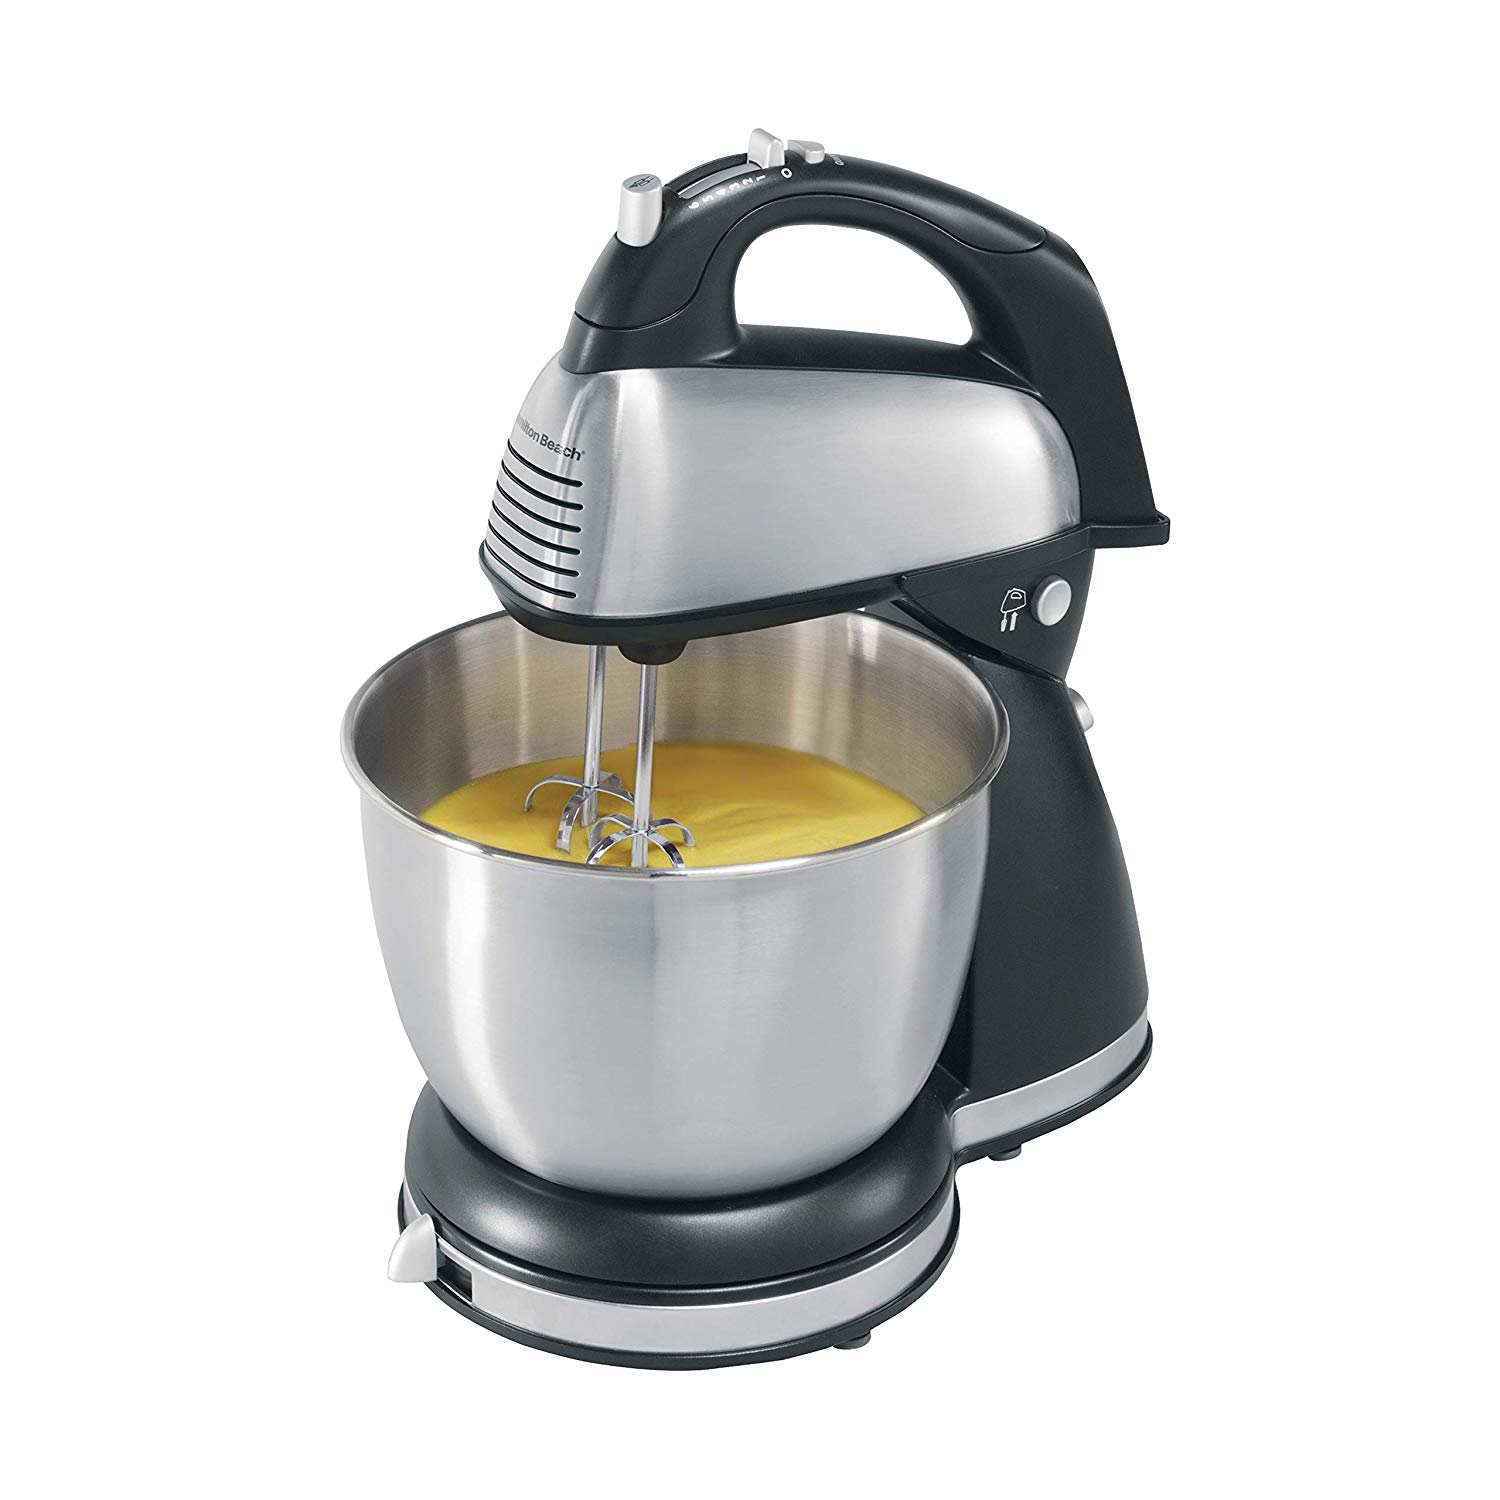 Hamilton beach 64650 6-speed classic stand mixer